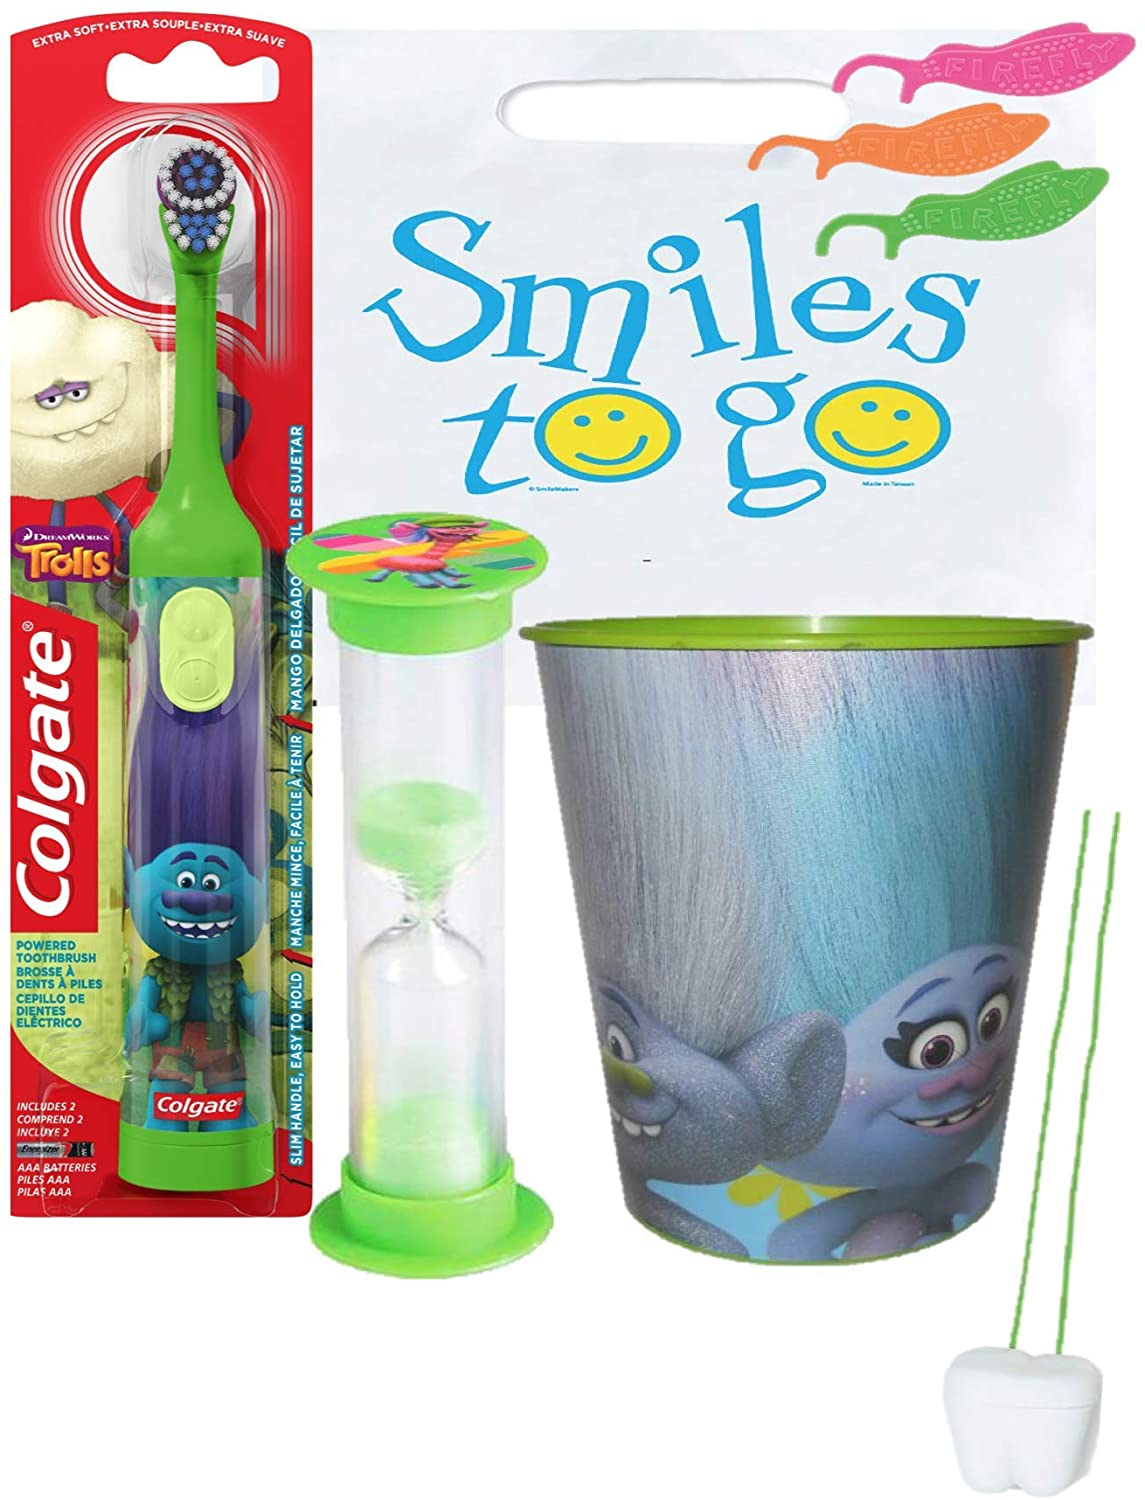 Trolls Branch Inspired 3pc Bright Smile Oral Hygiene Bundle! Turbo Spin Toothbrush, Brushing Timer & Mouthwash Rinse Cup! Plus Dental Gift Bag & Tooth Saver Necklace!